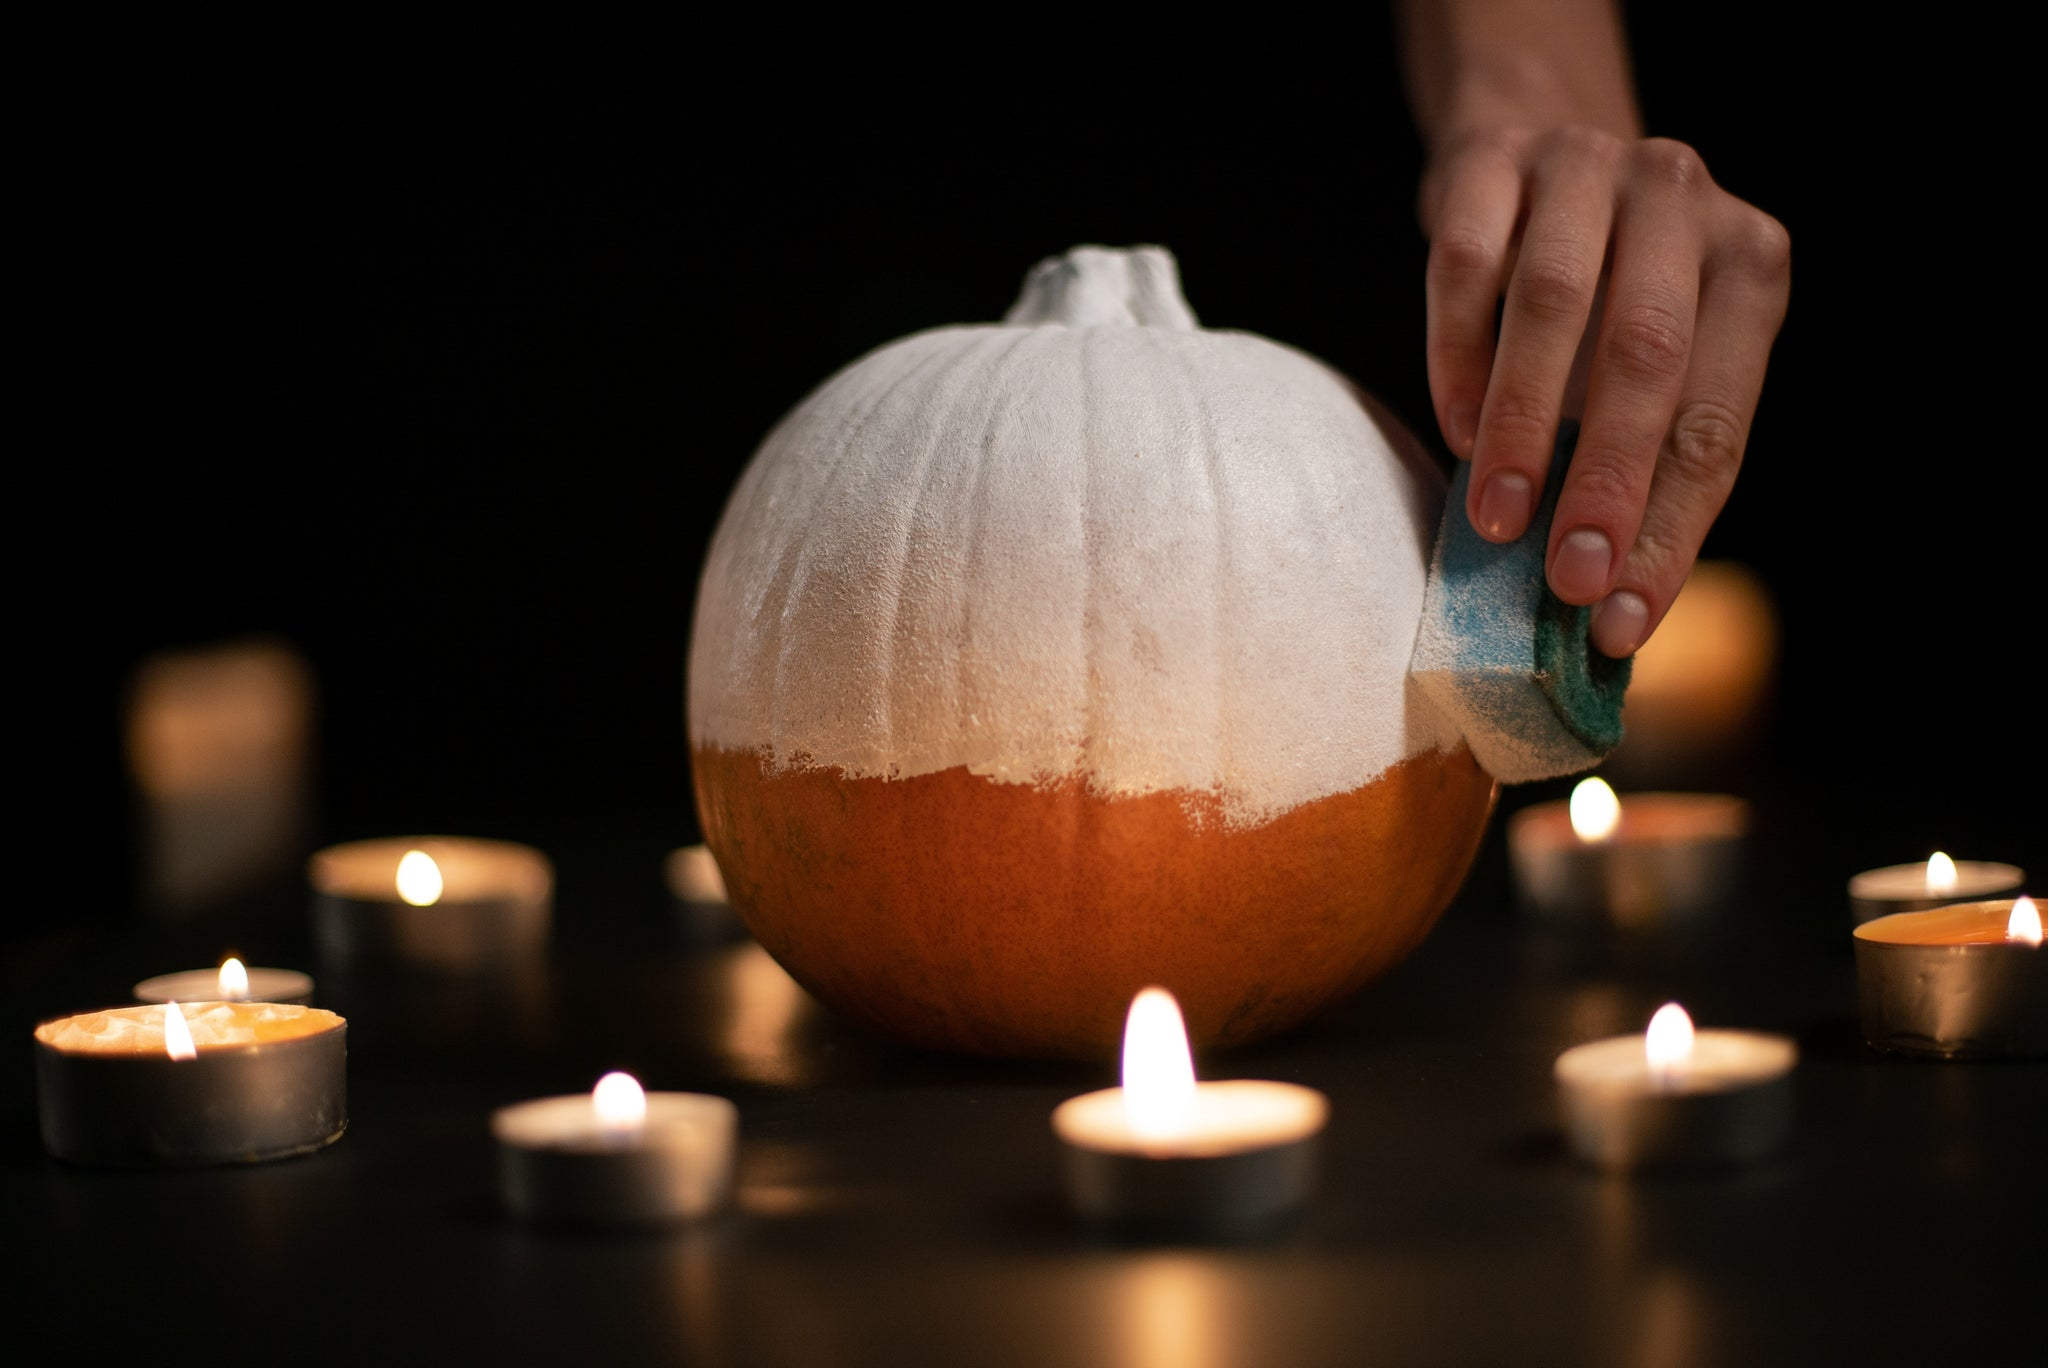 A sponge applicator is used to apply the white base coat to the entirety of the pumpkin.